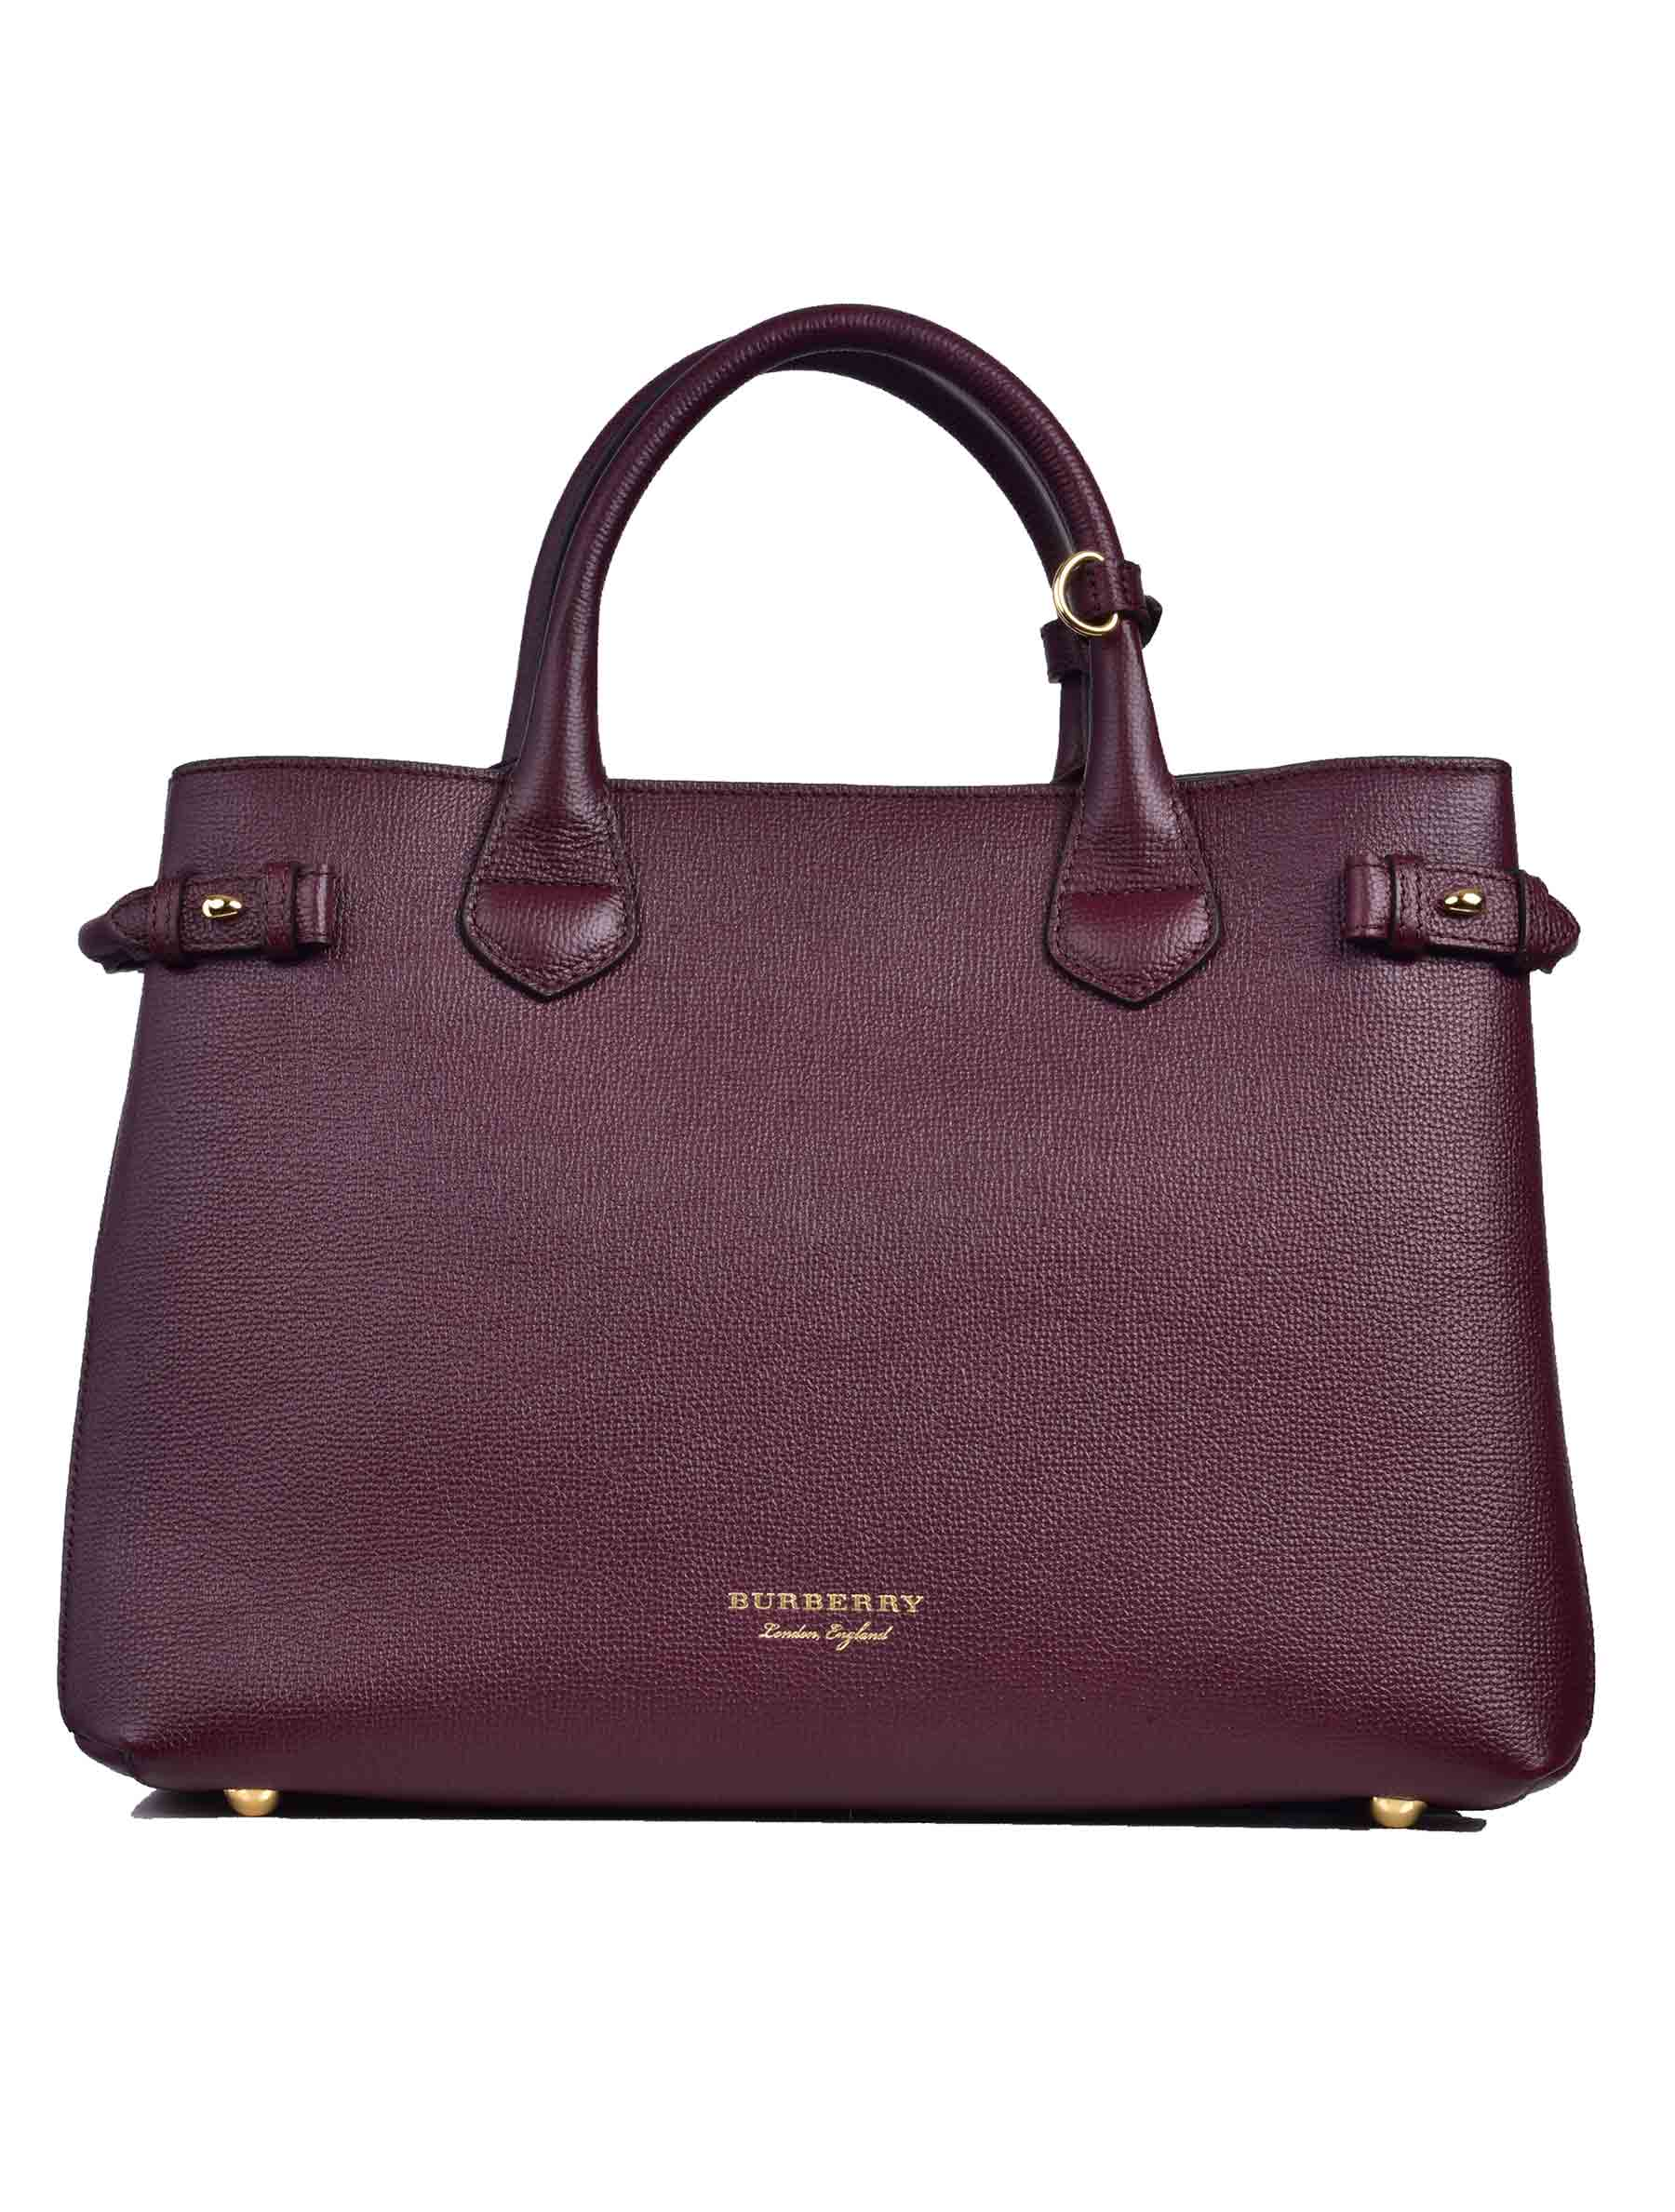 Burberry House Check Detail Tote